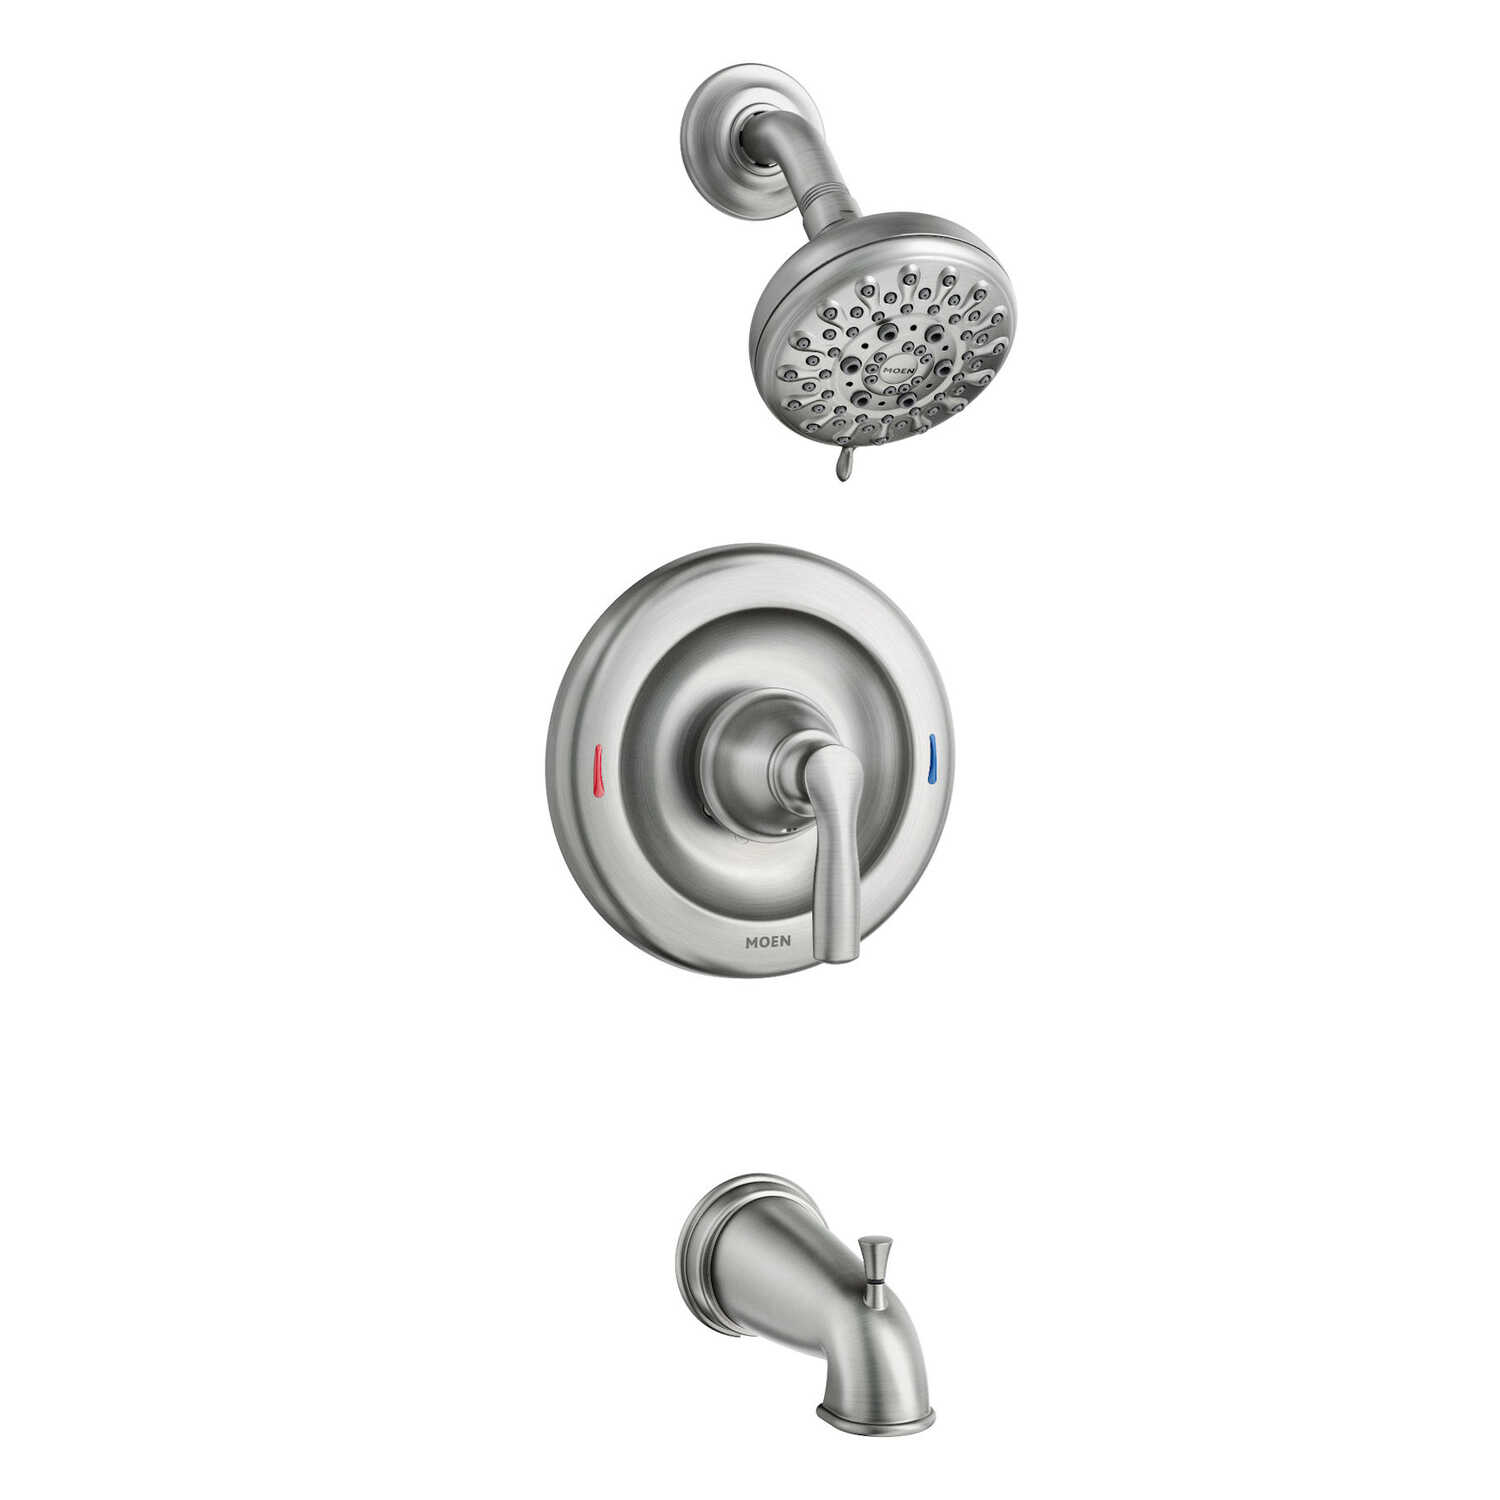 Moen  Hilliard  1-Handle  Brushed Nickel  Tub and Shower Faucet